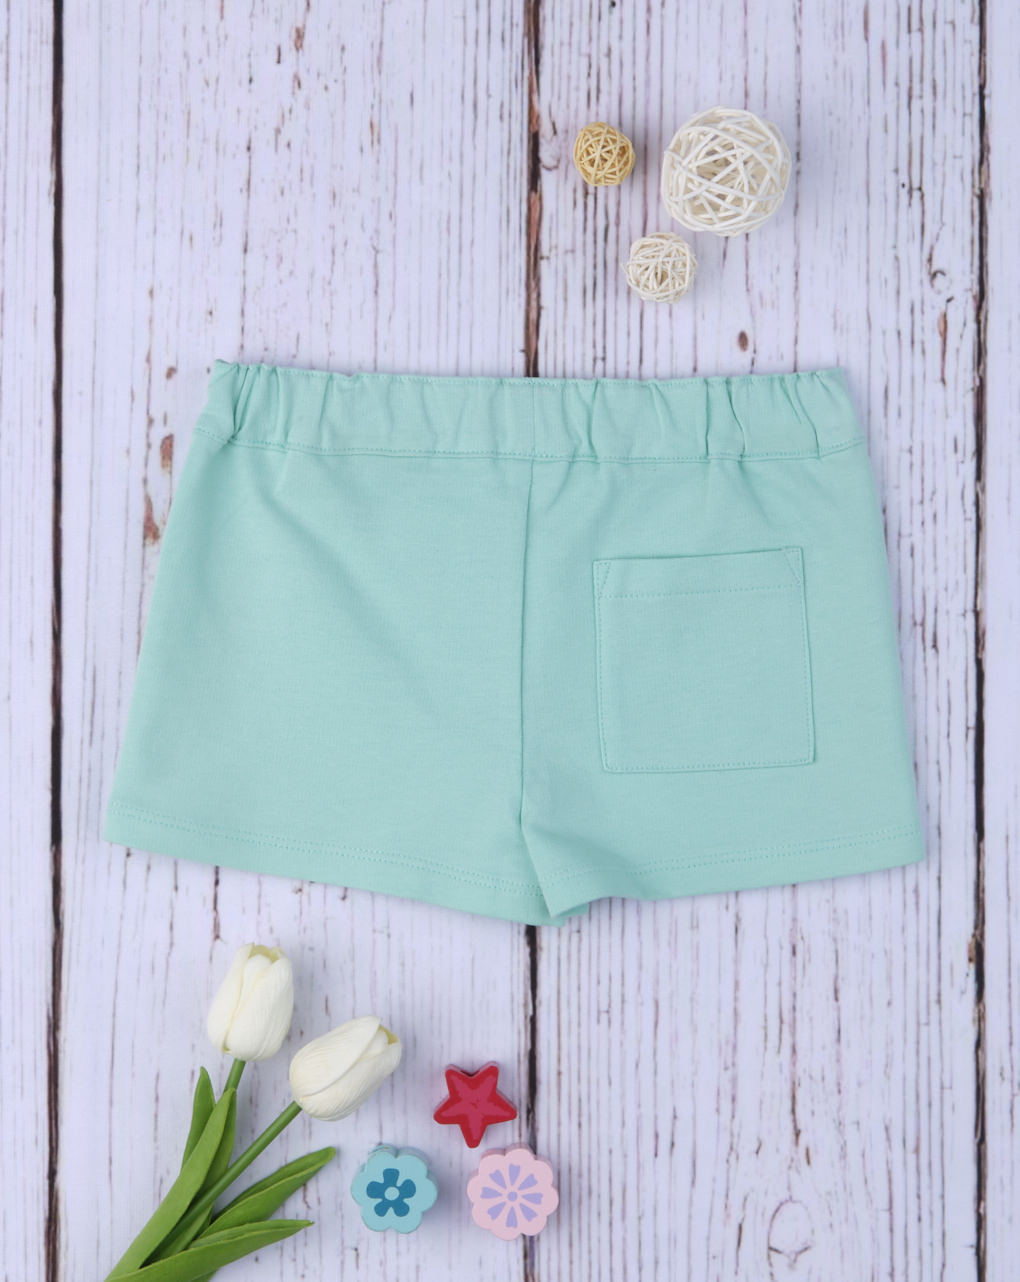 Shorts simil gonna acqua - Prénatal